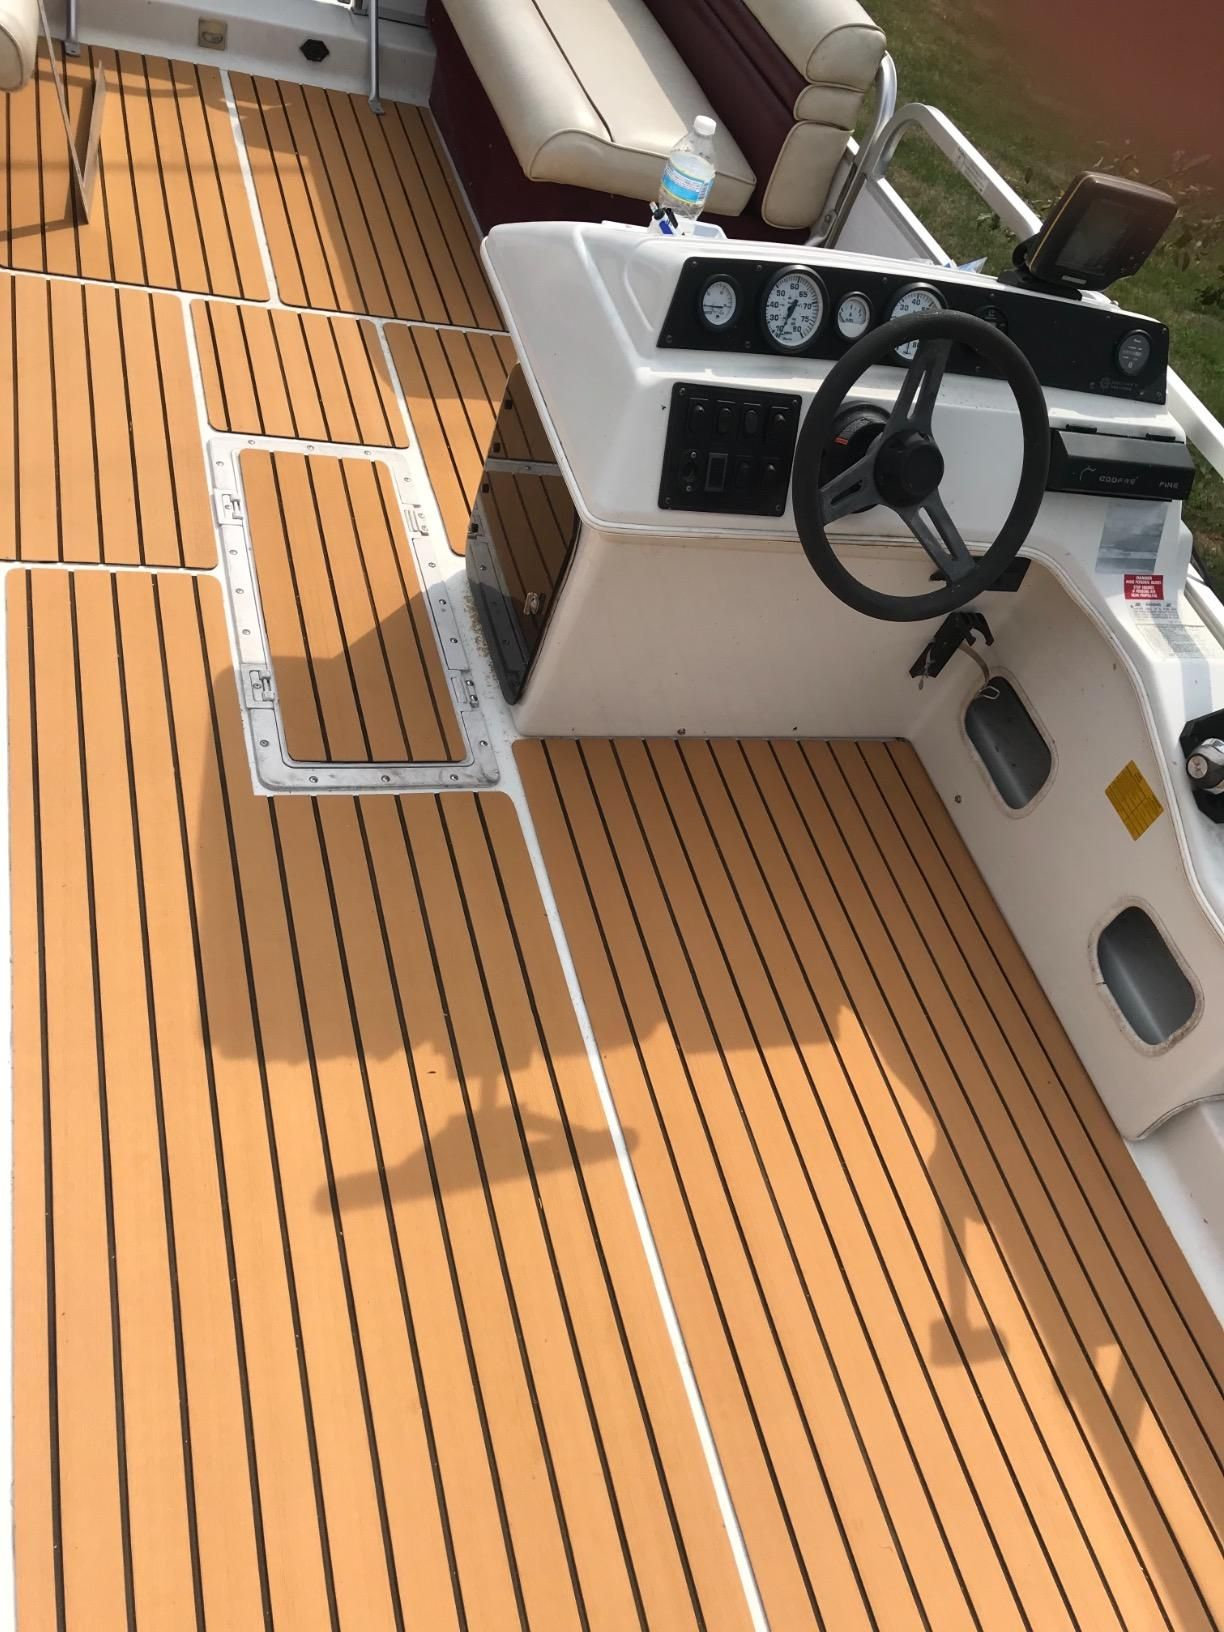 Amazon Com Customer Reviews Happybuy Eva Foam Faux Teak Boat Decking Sheet 94 5 X47 2 94 5 X35 4 90 5 X35 4 Non Skid Self Adhesive Sea Deck Teak Flooring